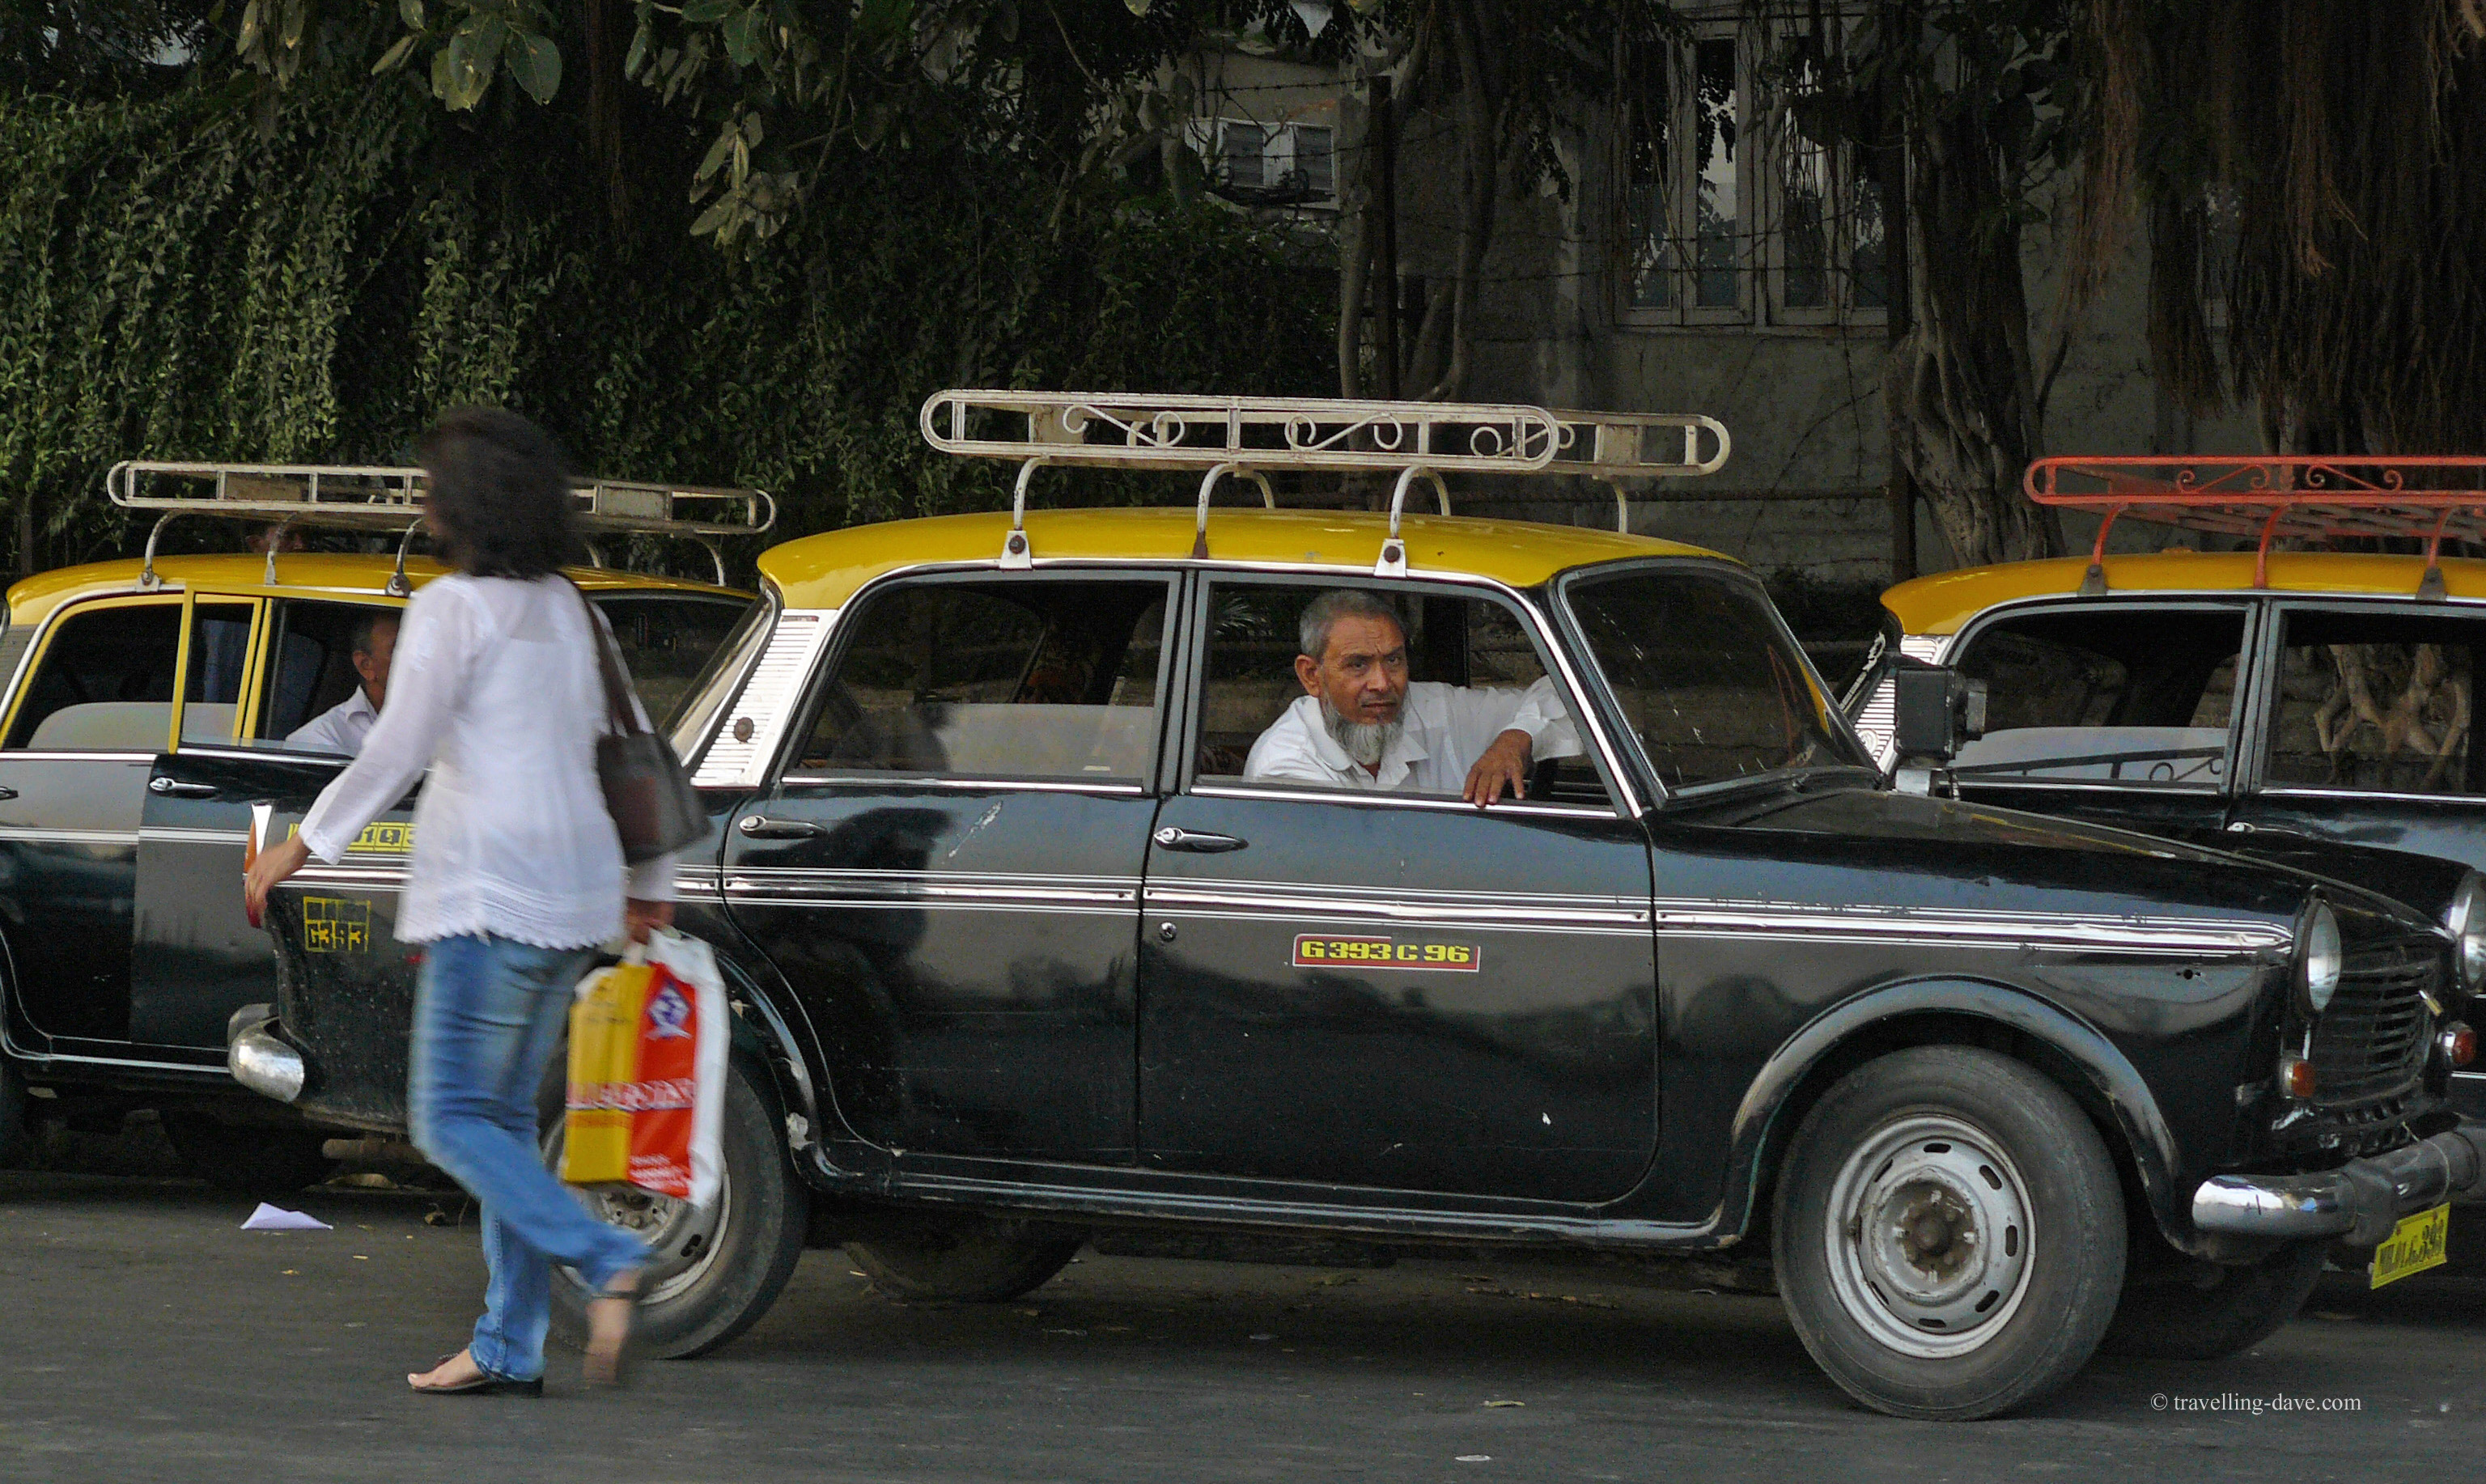 One of Mumbai's black and yellow taxis